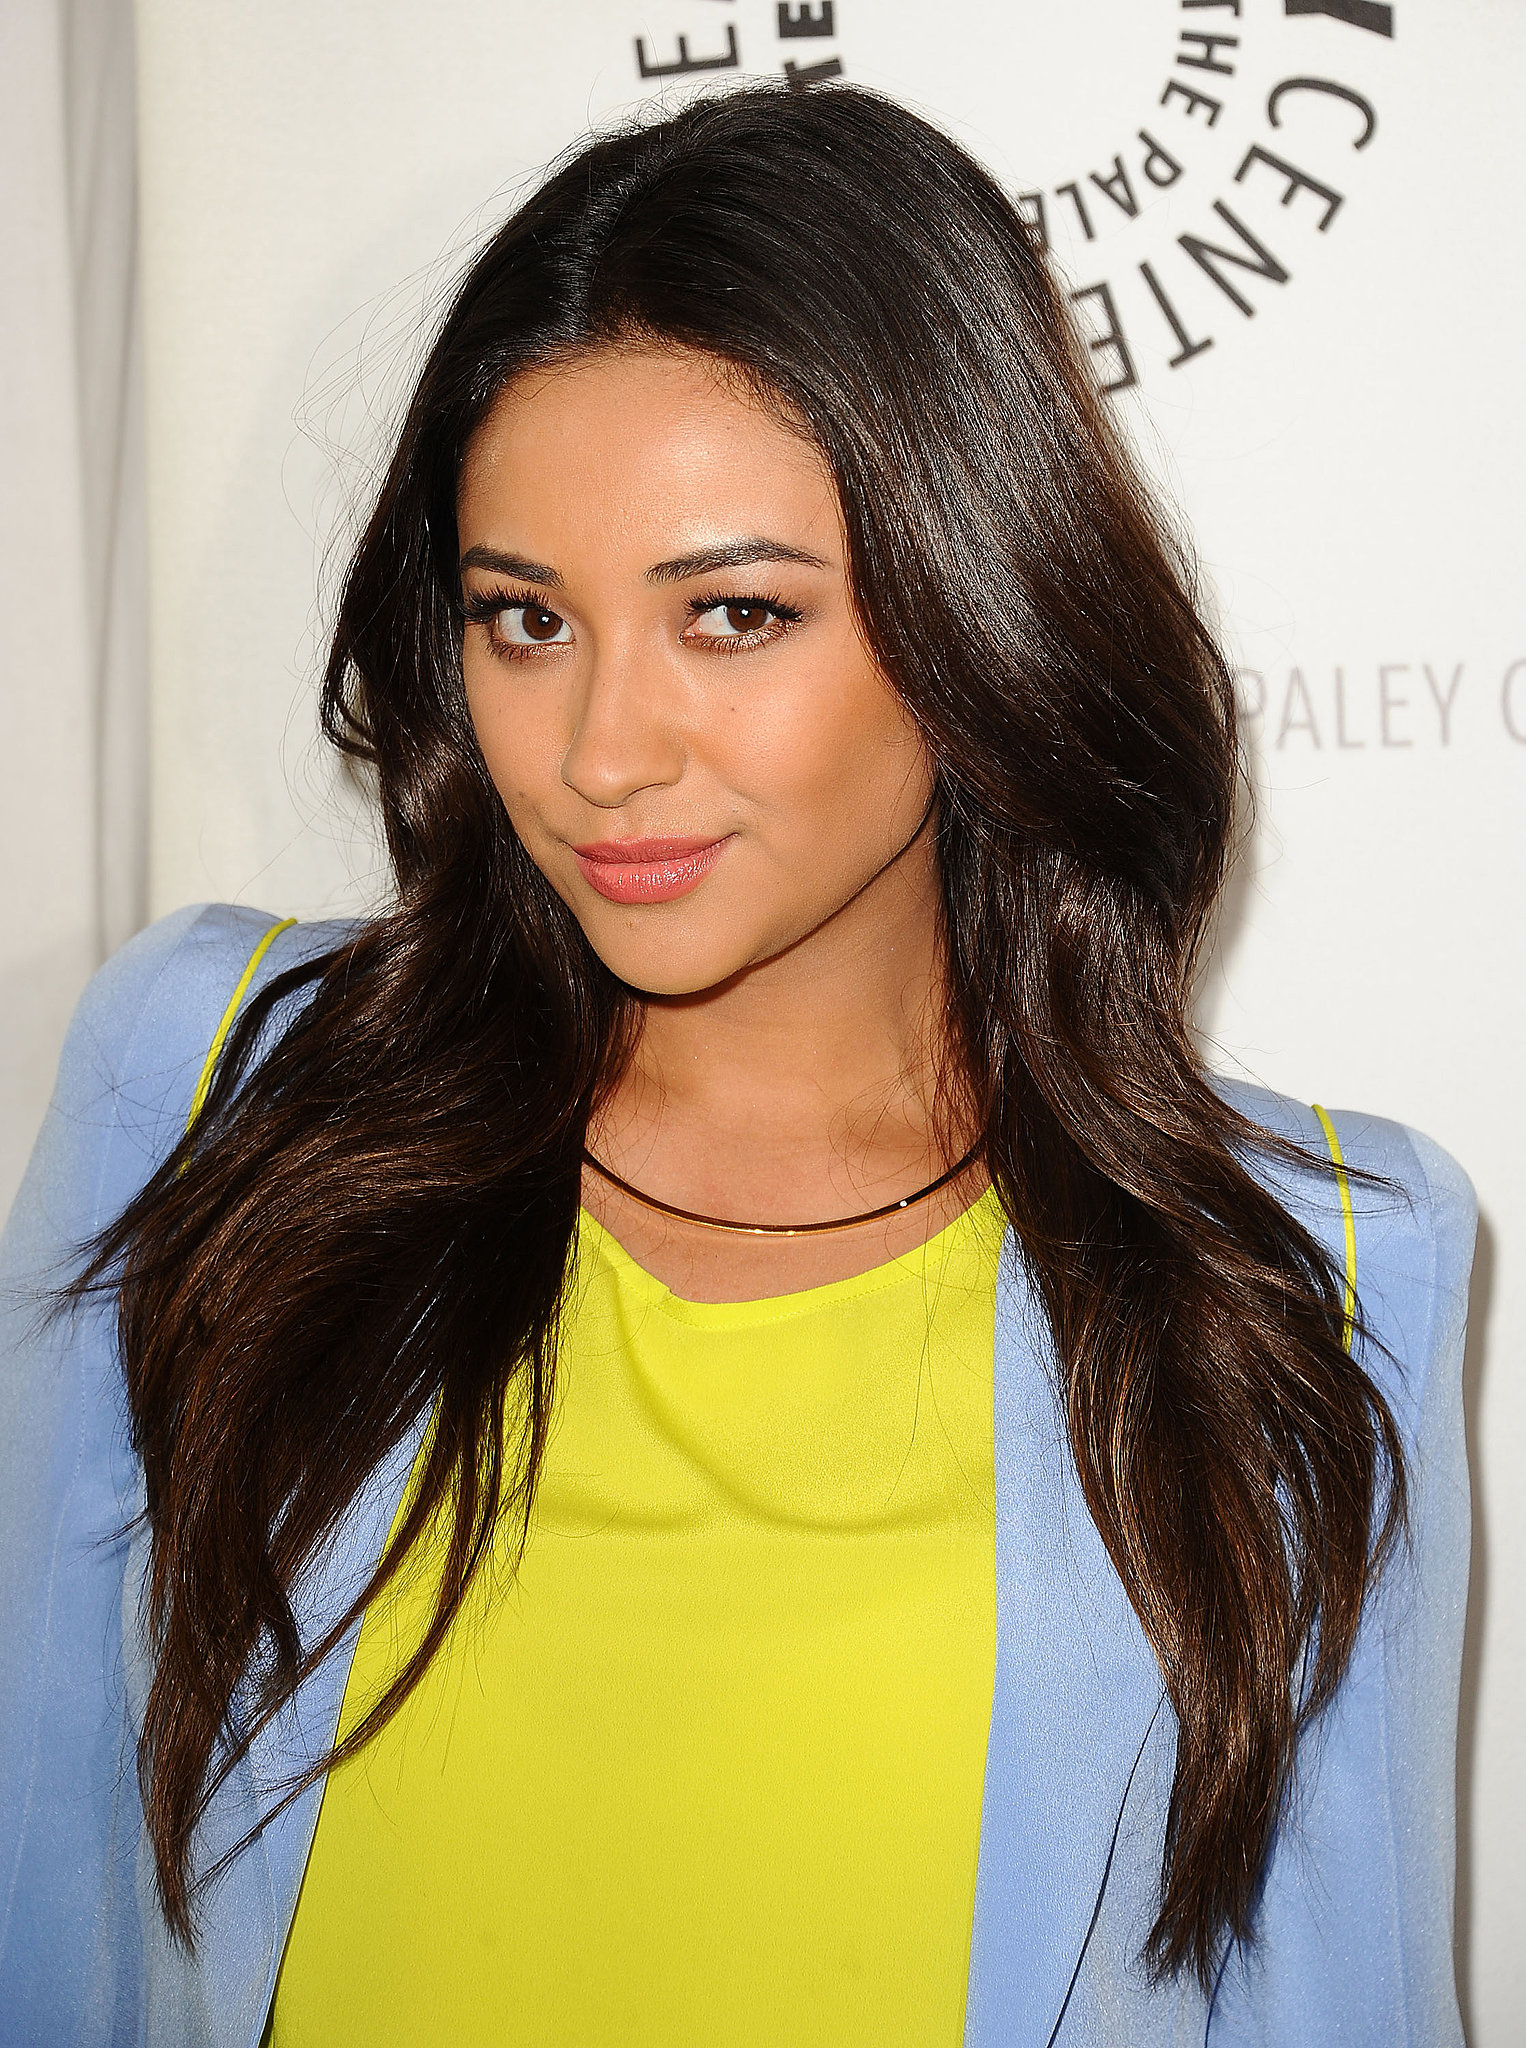 Shay Mitchell wore barely there waves. The look is easy to create by making subtle bends in your hair with a curling iron. Try wrapping your hair around the barrel with your hands to get the casual look.